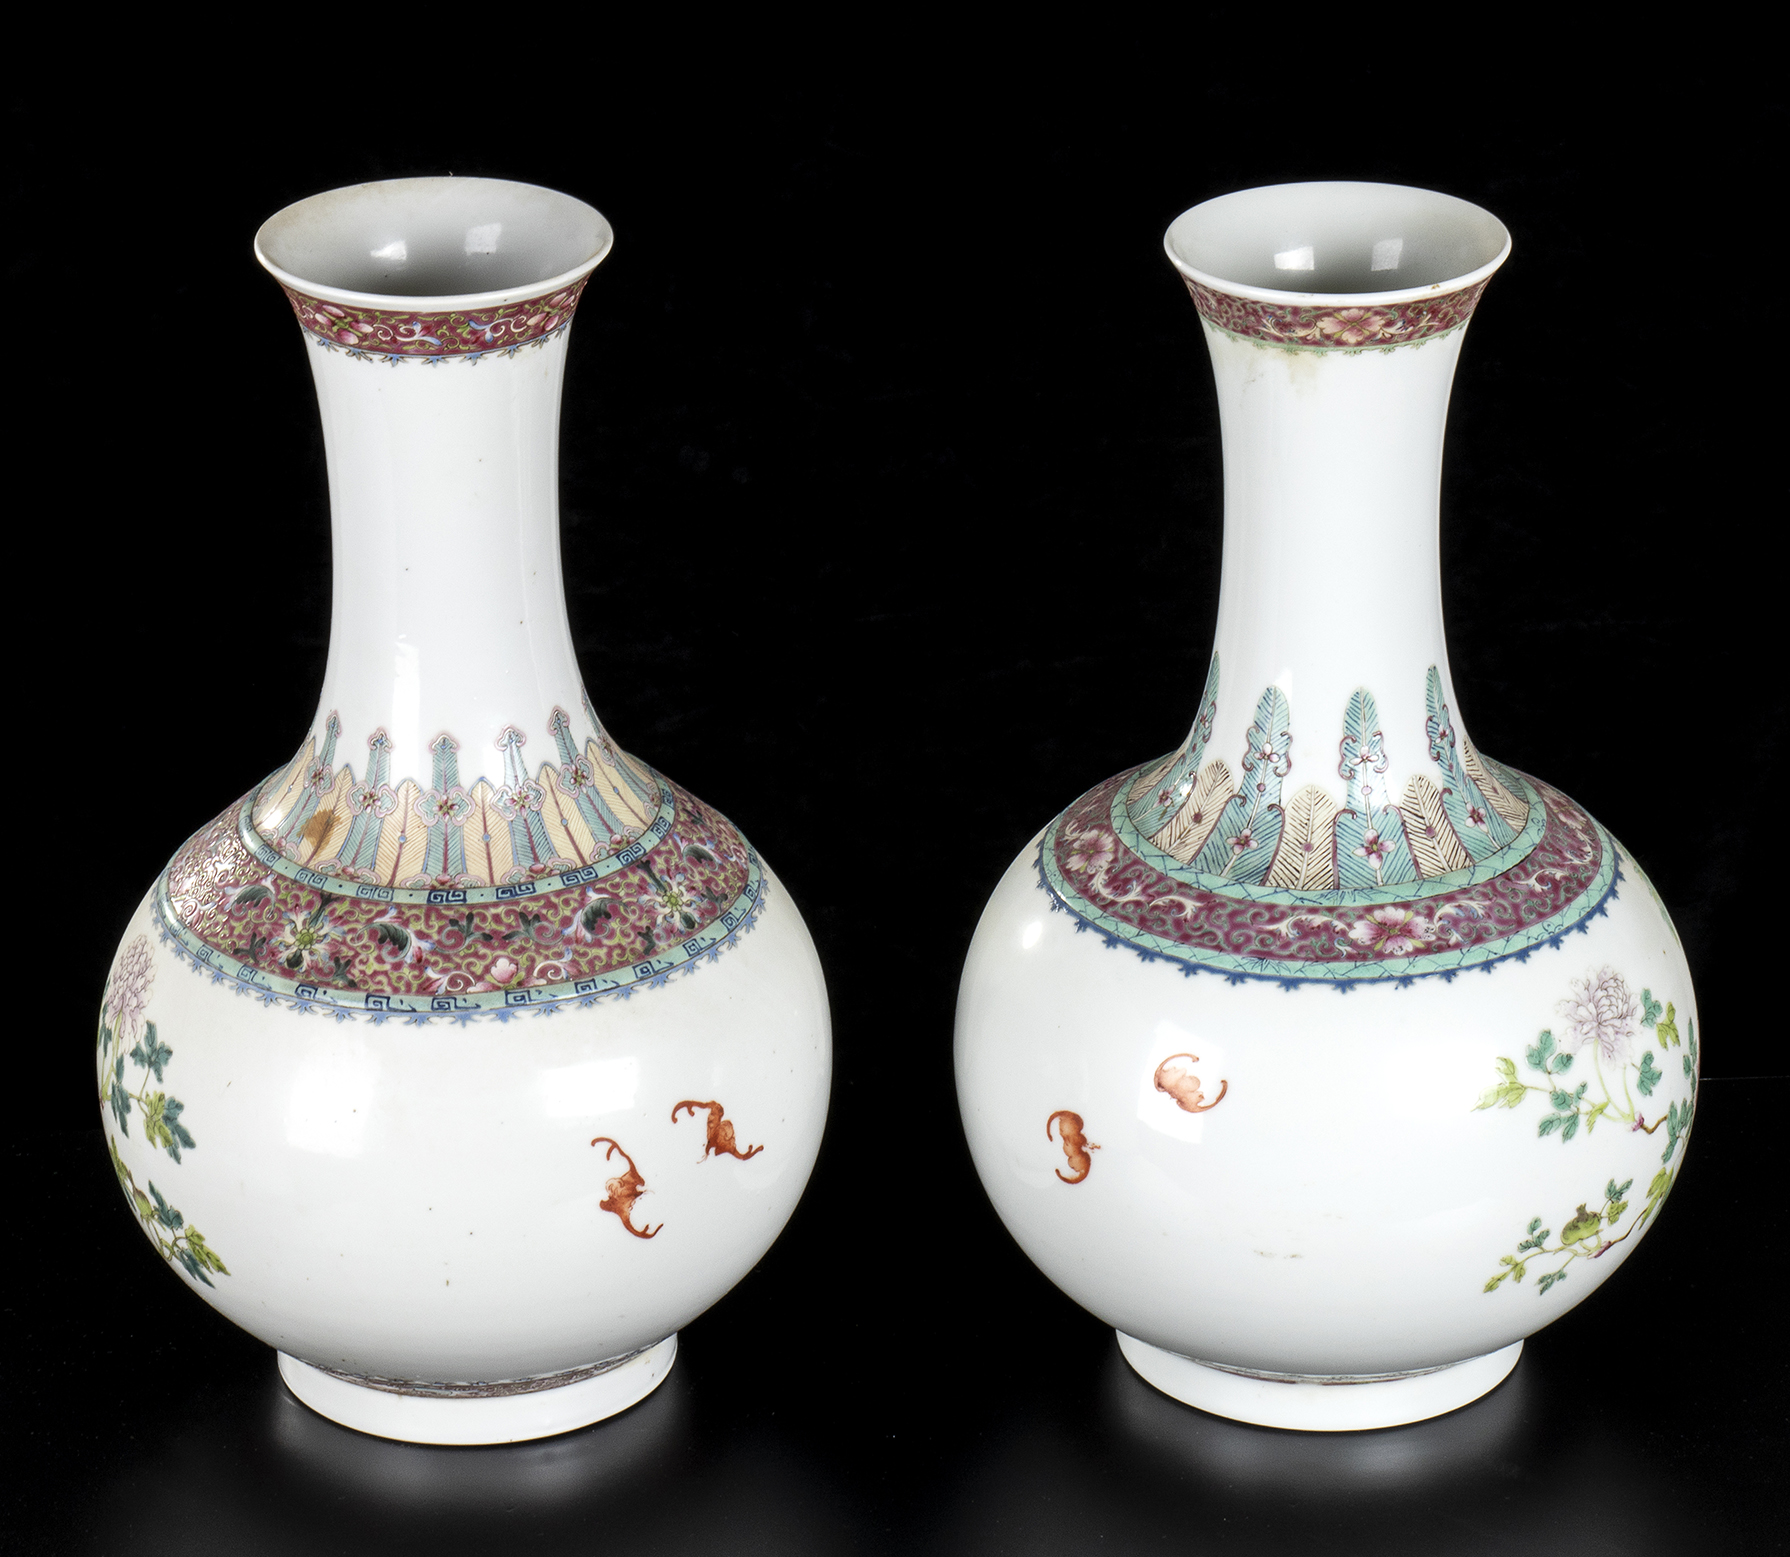 A PAIR OF PORCELAIN BOTTLE VASES WITH POLYCHROME DECORATIONChina, first half of the 20th century - Image 3 of 3